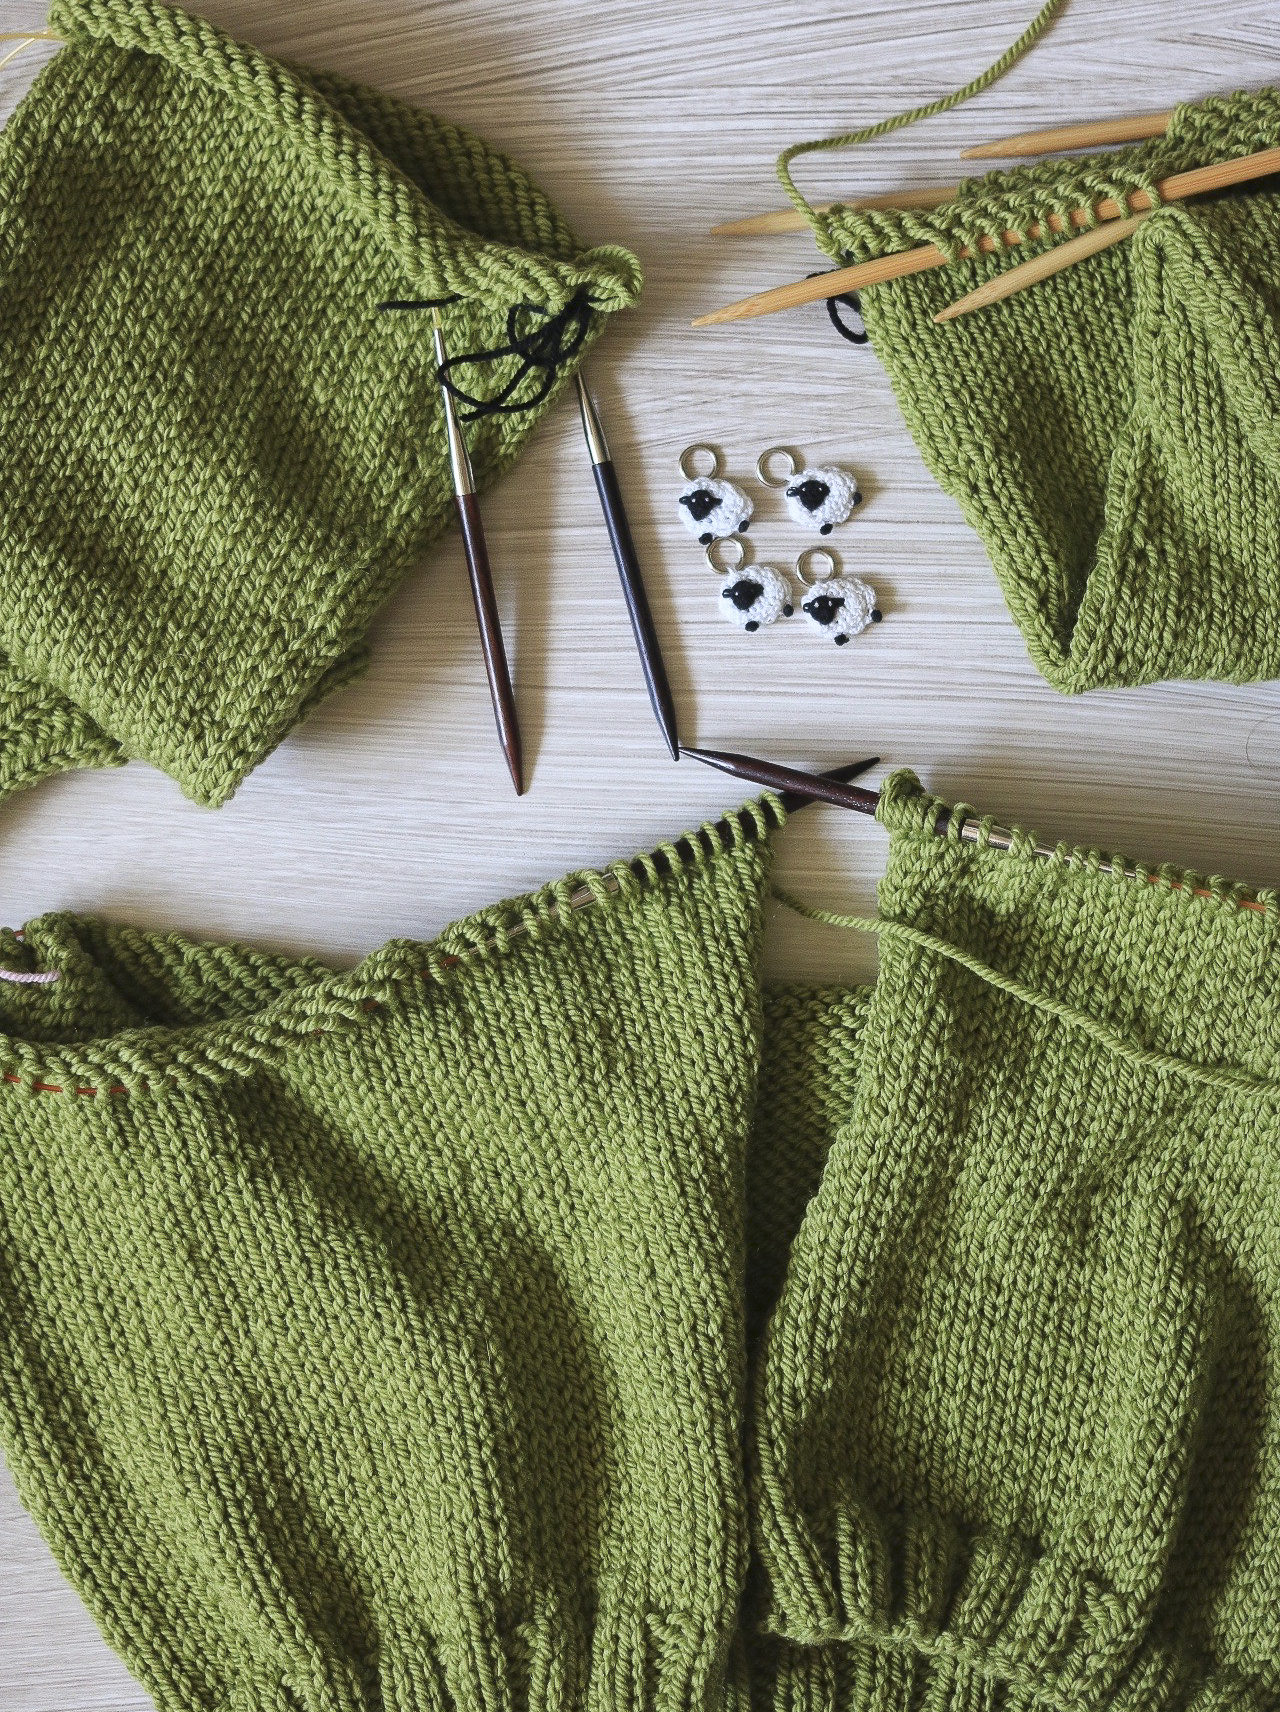 Parts of the Carbeth Cardigan before assembly